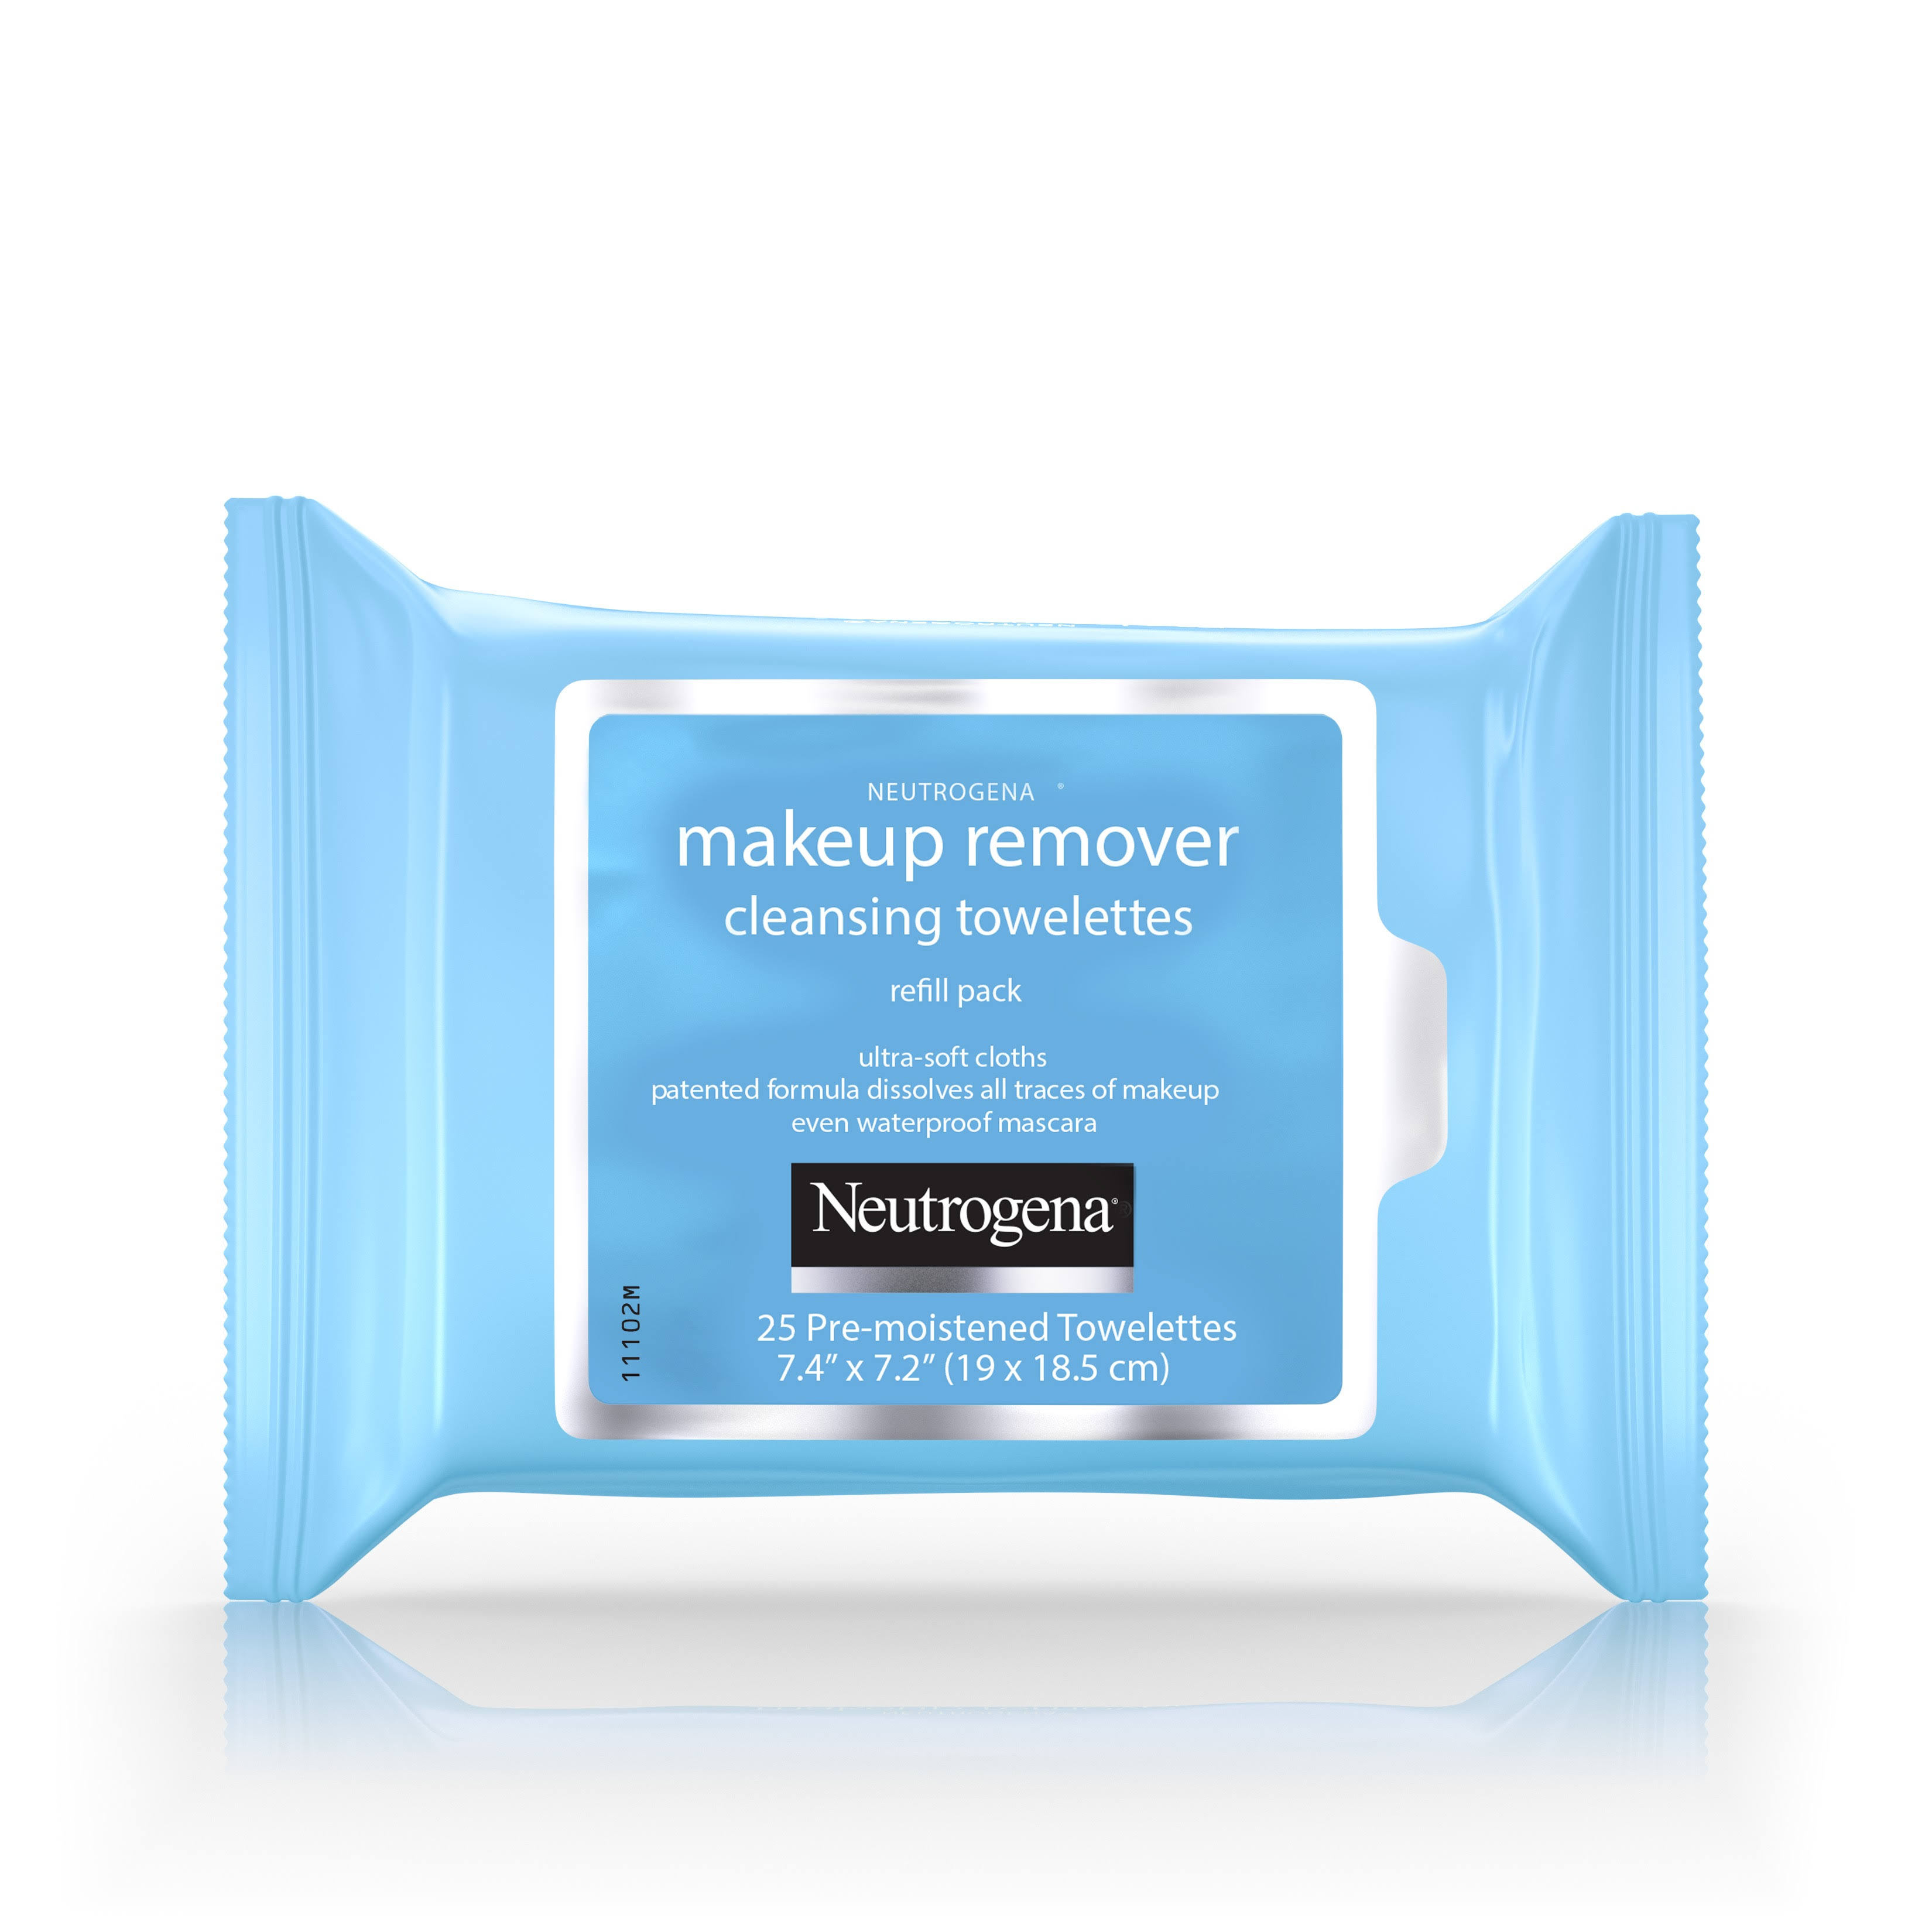 Neutrogena Make-up Remover Cleansing Towelettes - 25 ct